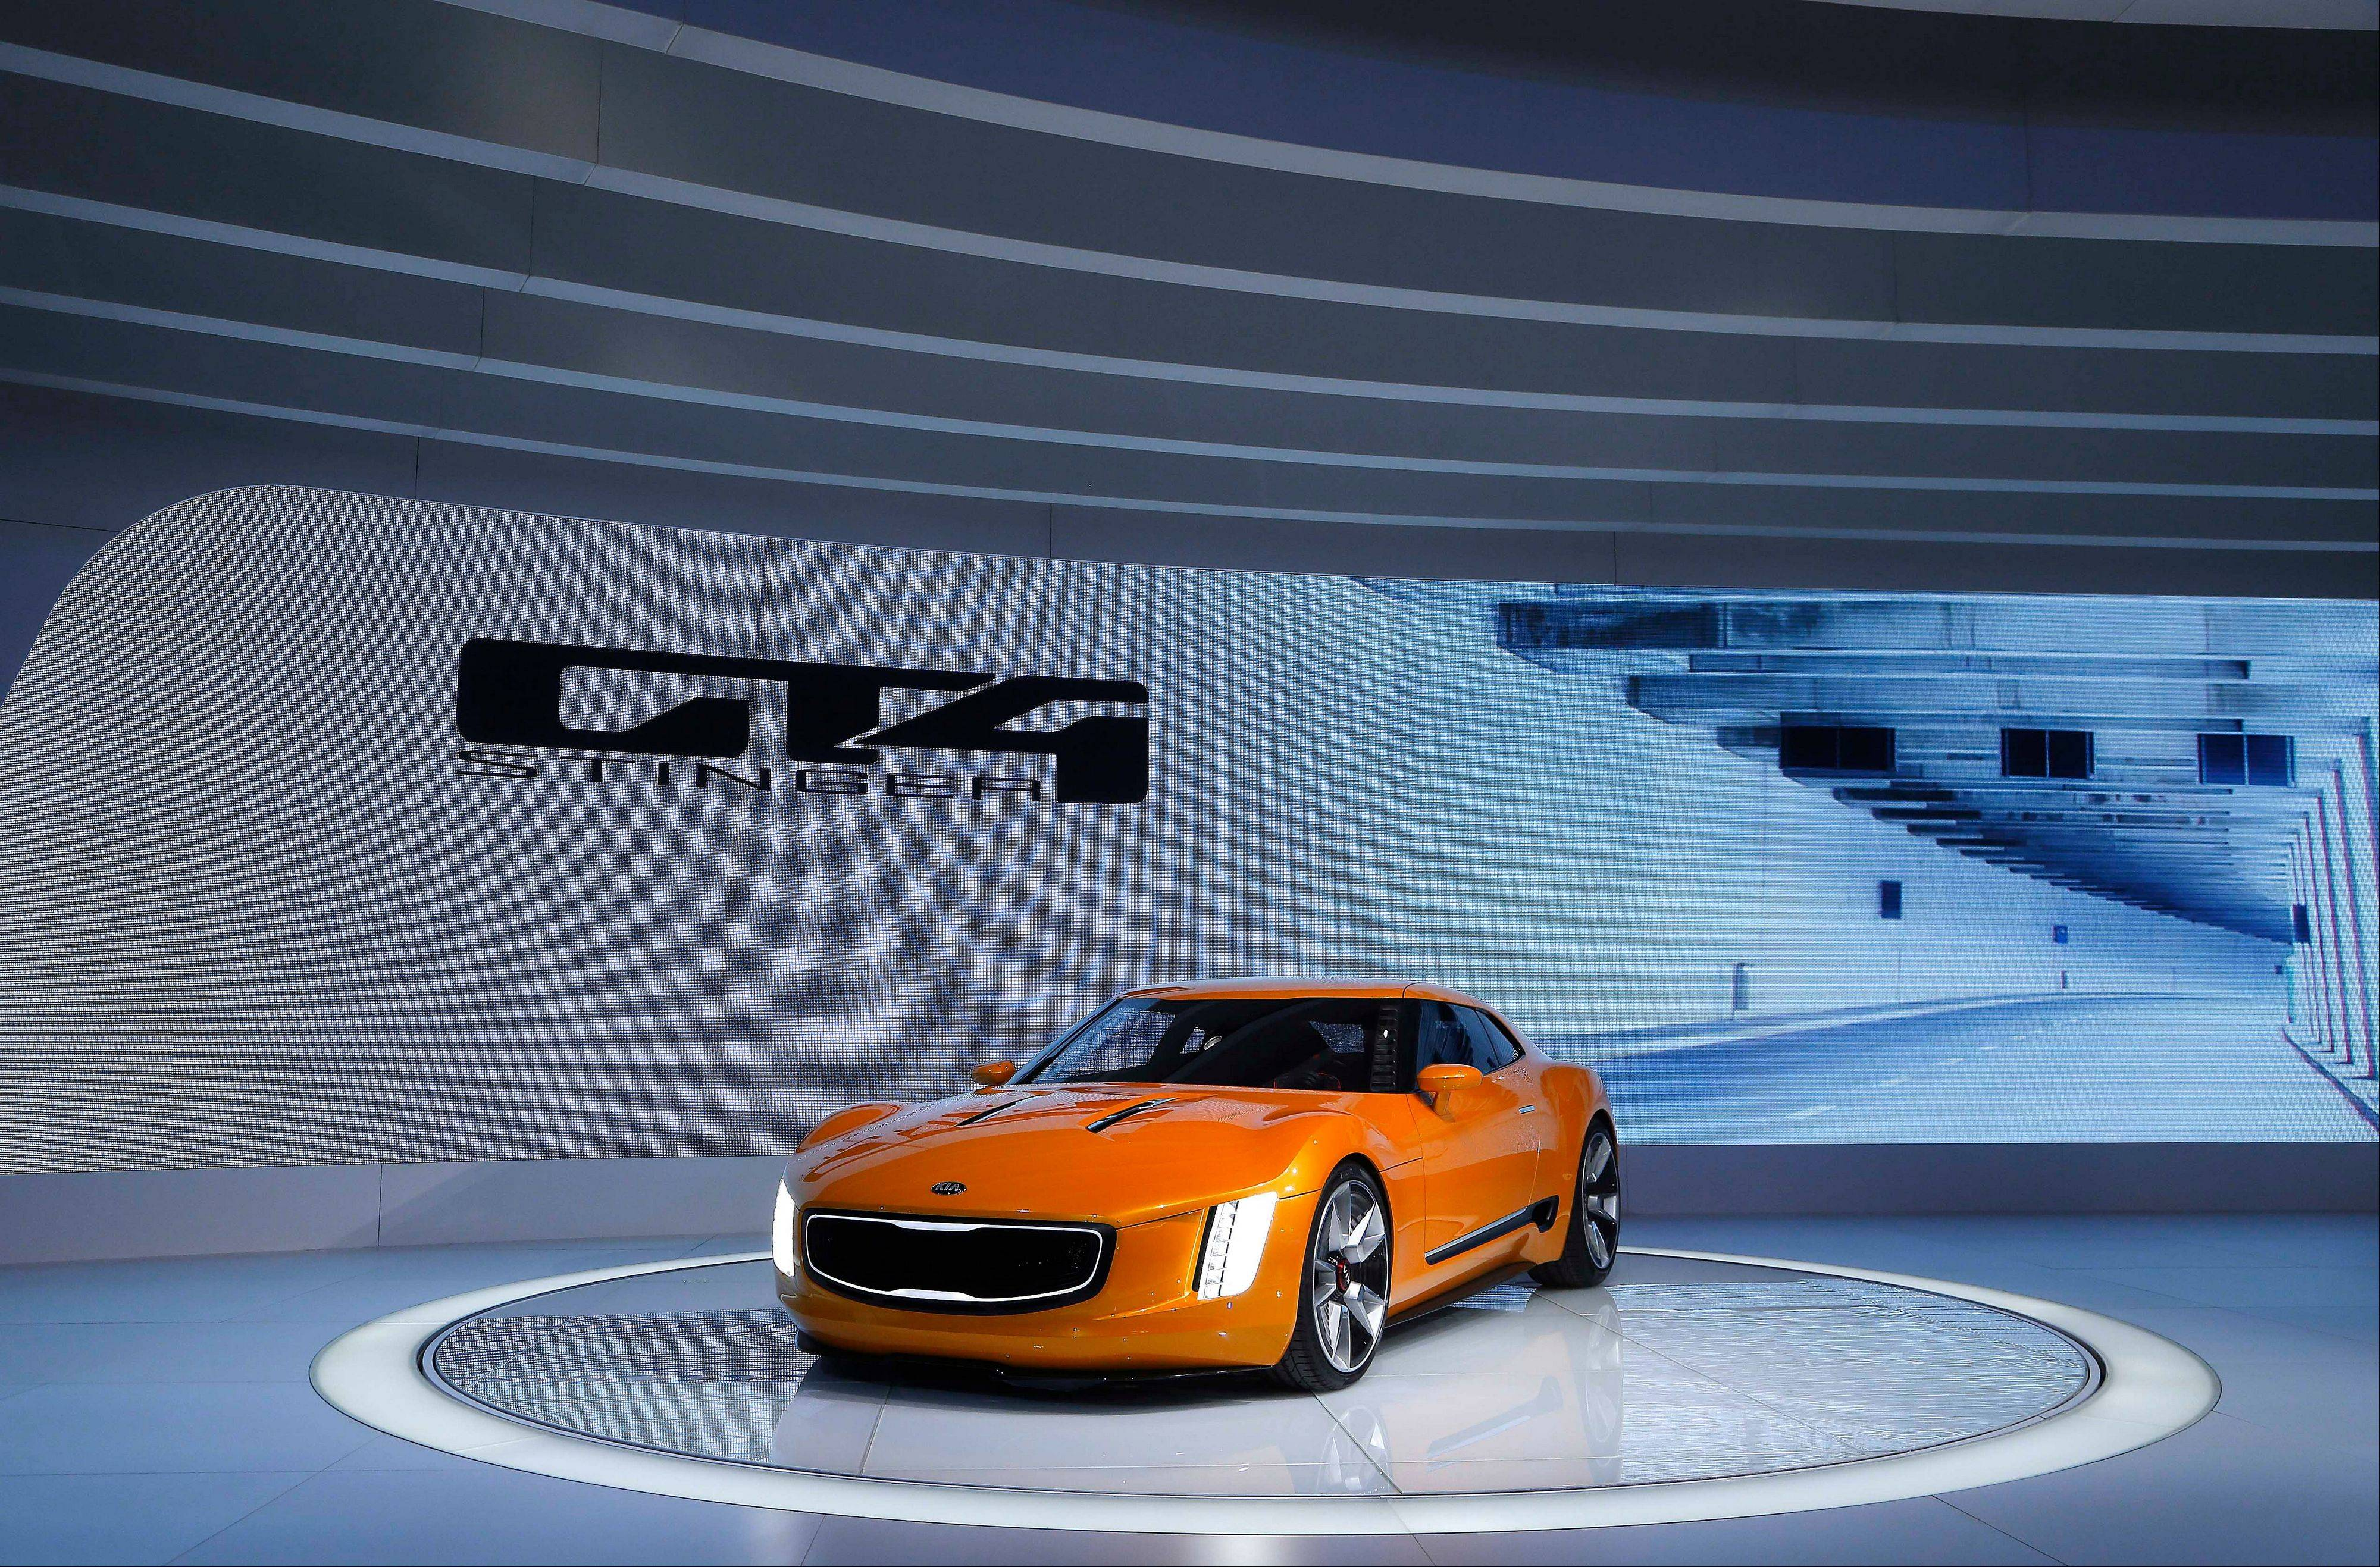 The Kia GT4 Stinger concept debuts during media previews during the North American International Auto Show in Detroit this week.